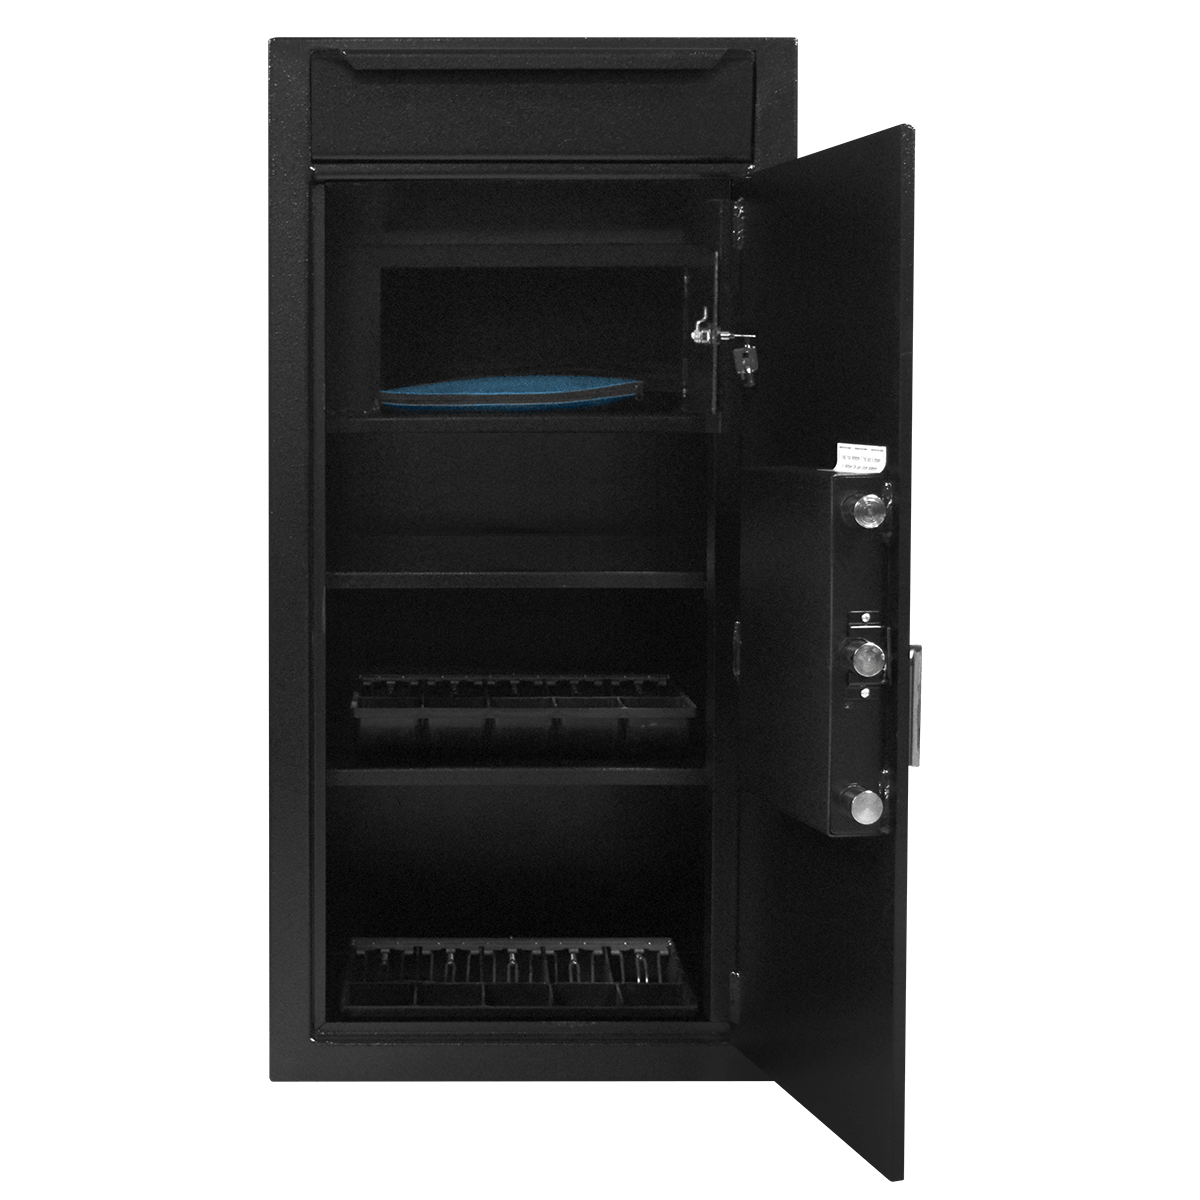 Stealth DS4020 Drop Safe 12 Gauge Door and Body with Steel Locking Bolts